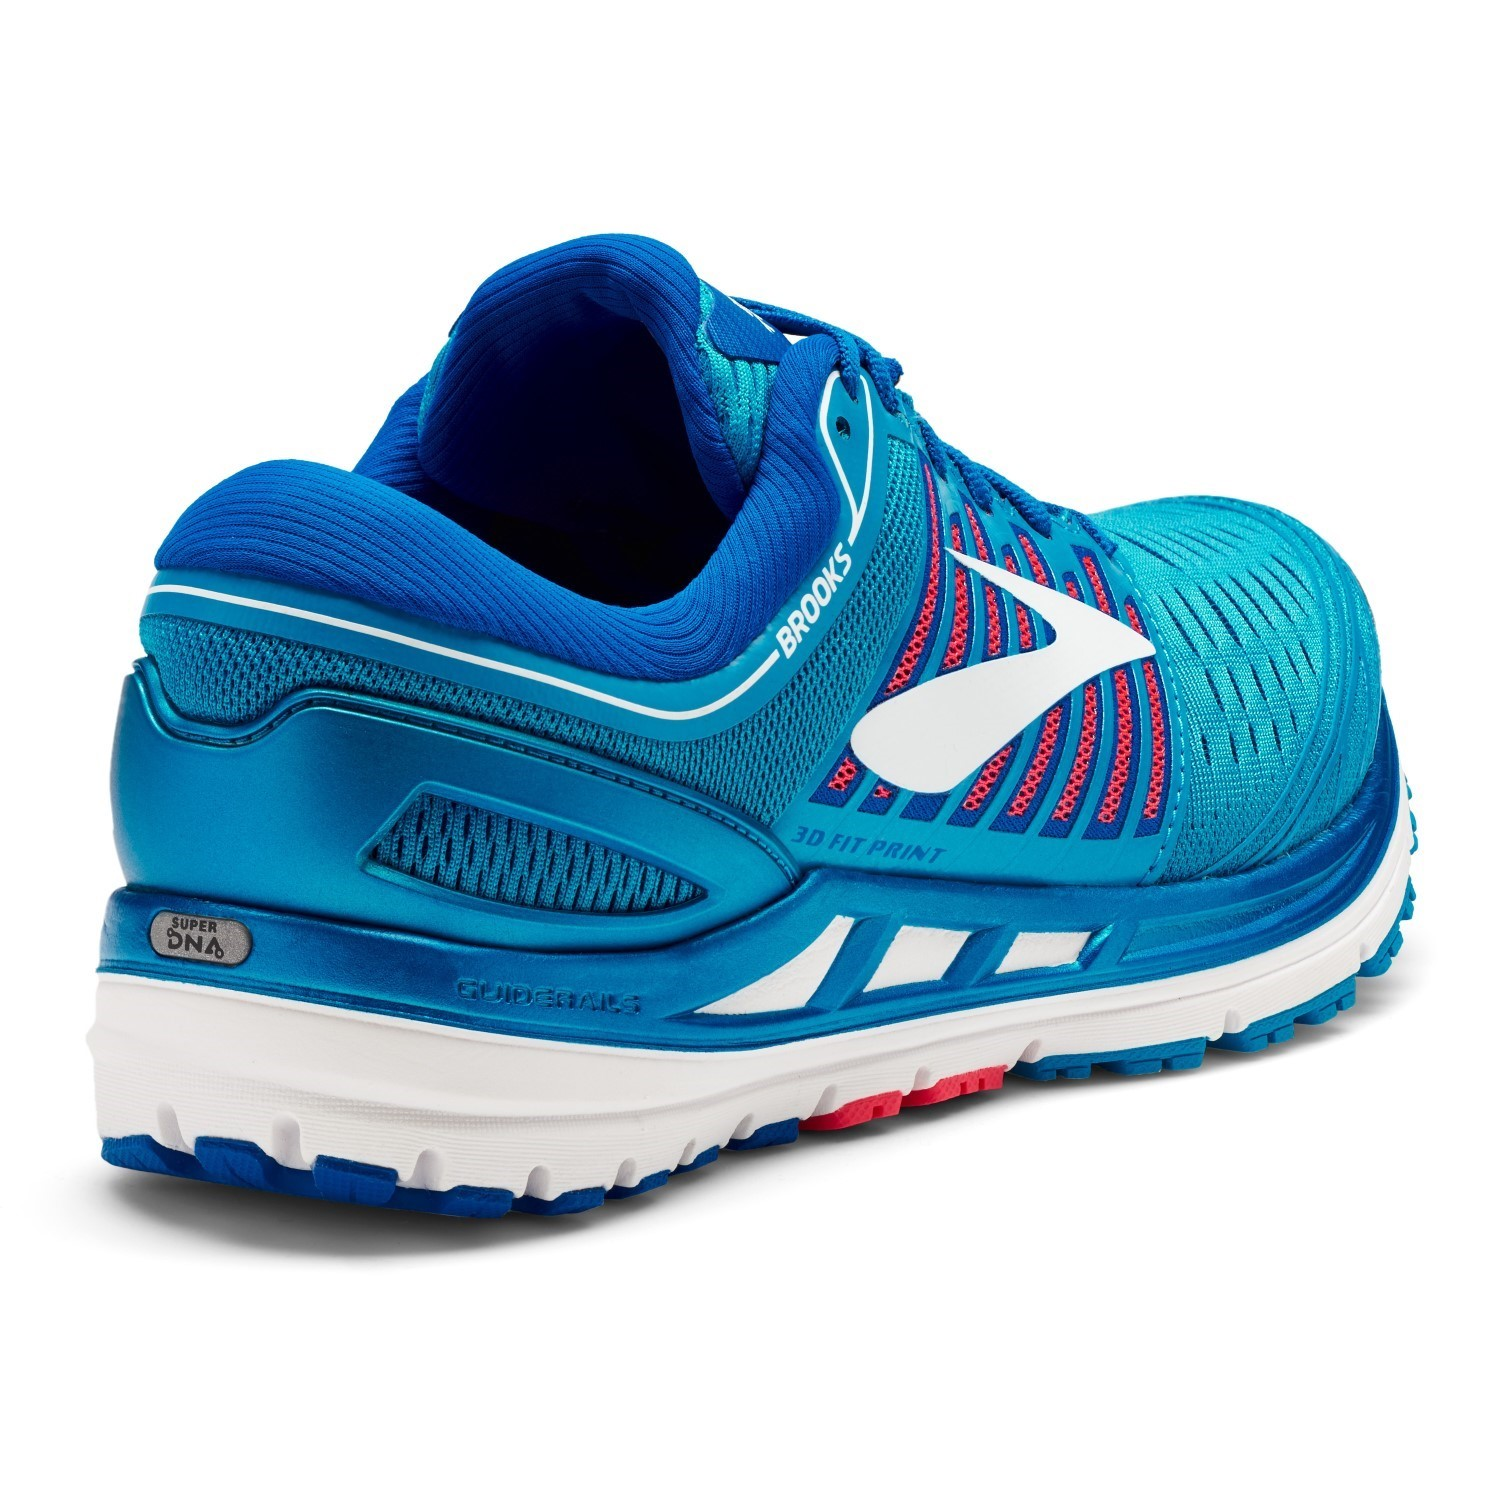 b05cb6f79ef Brooks Transcend 5 - Womens Running Shoes - Blue Pink White